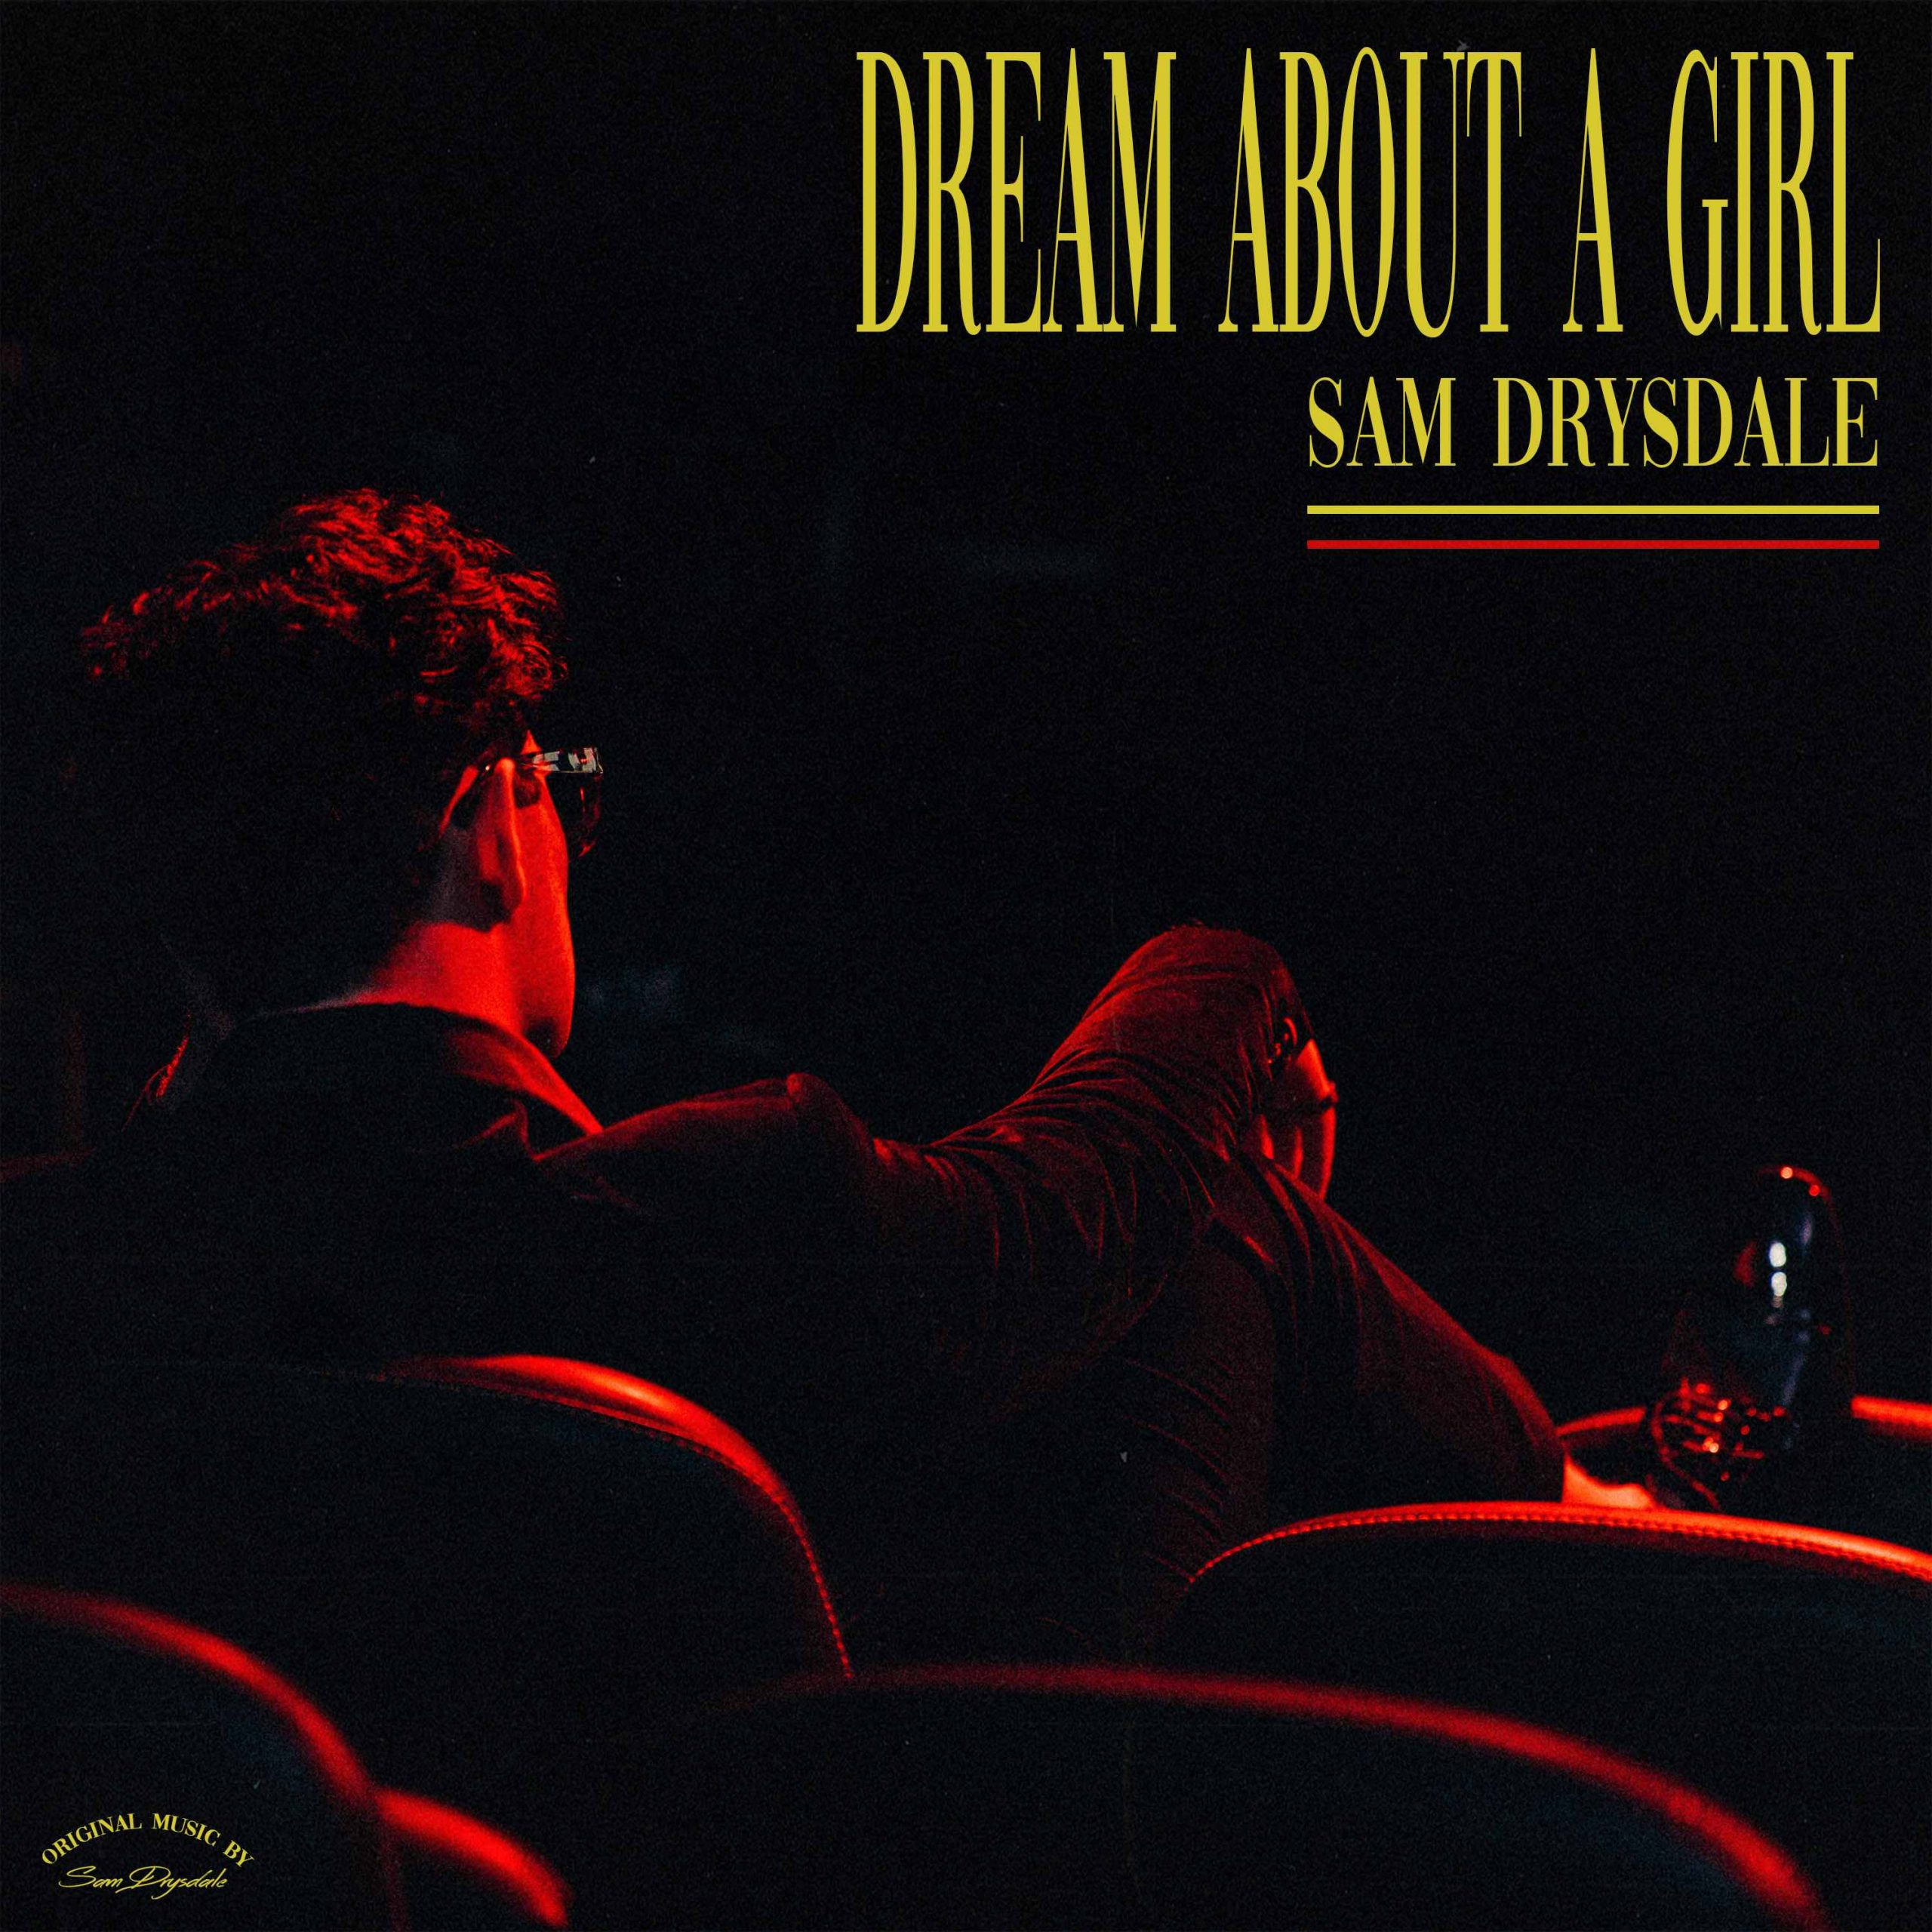 """Read more about the article Sam Drysdale's """"Dream About a Girl"""": The Tale of a Damaged Relationship"""